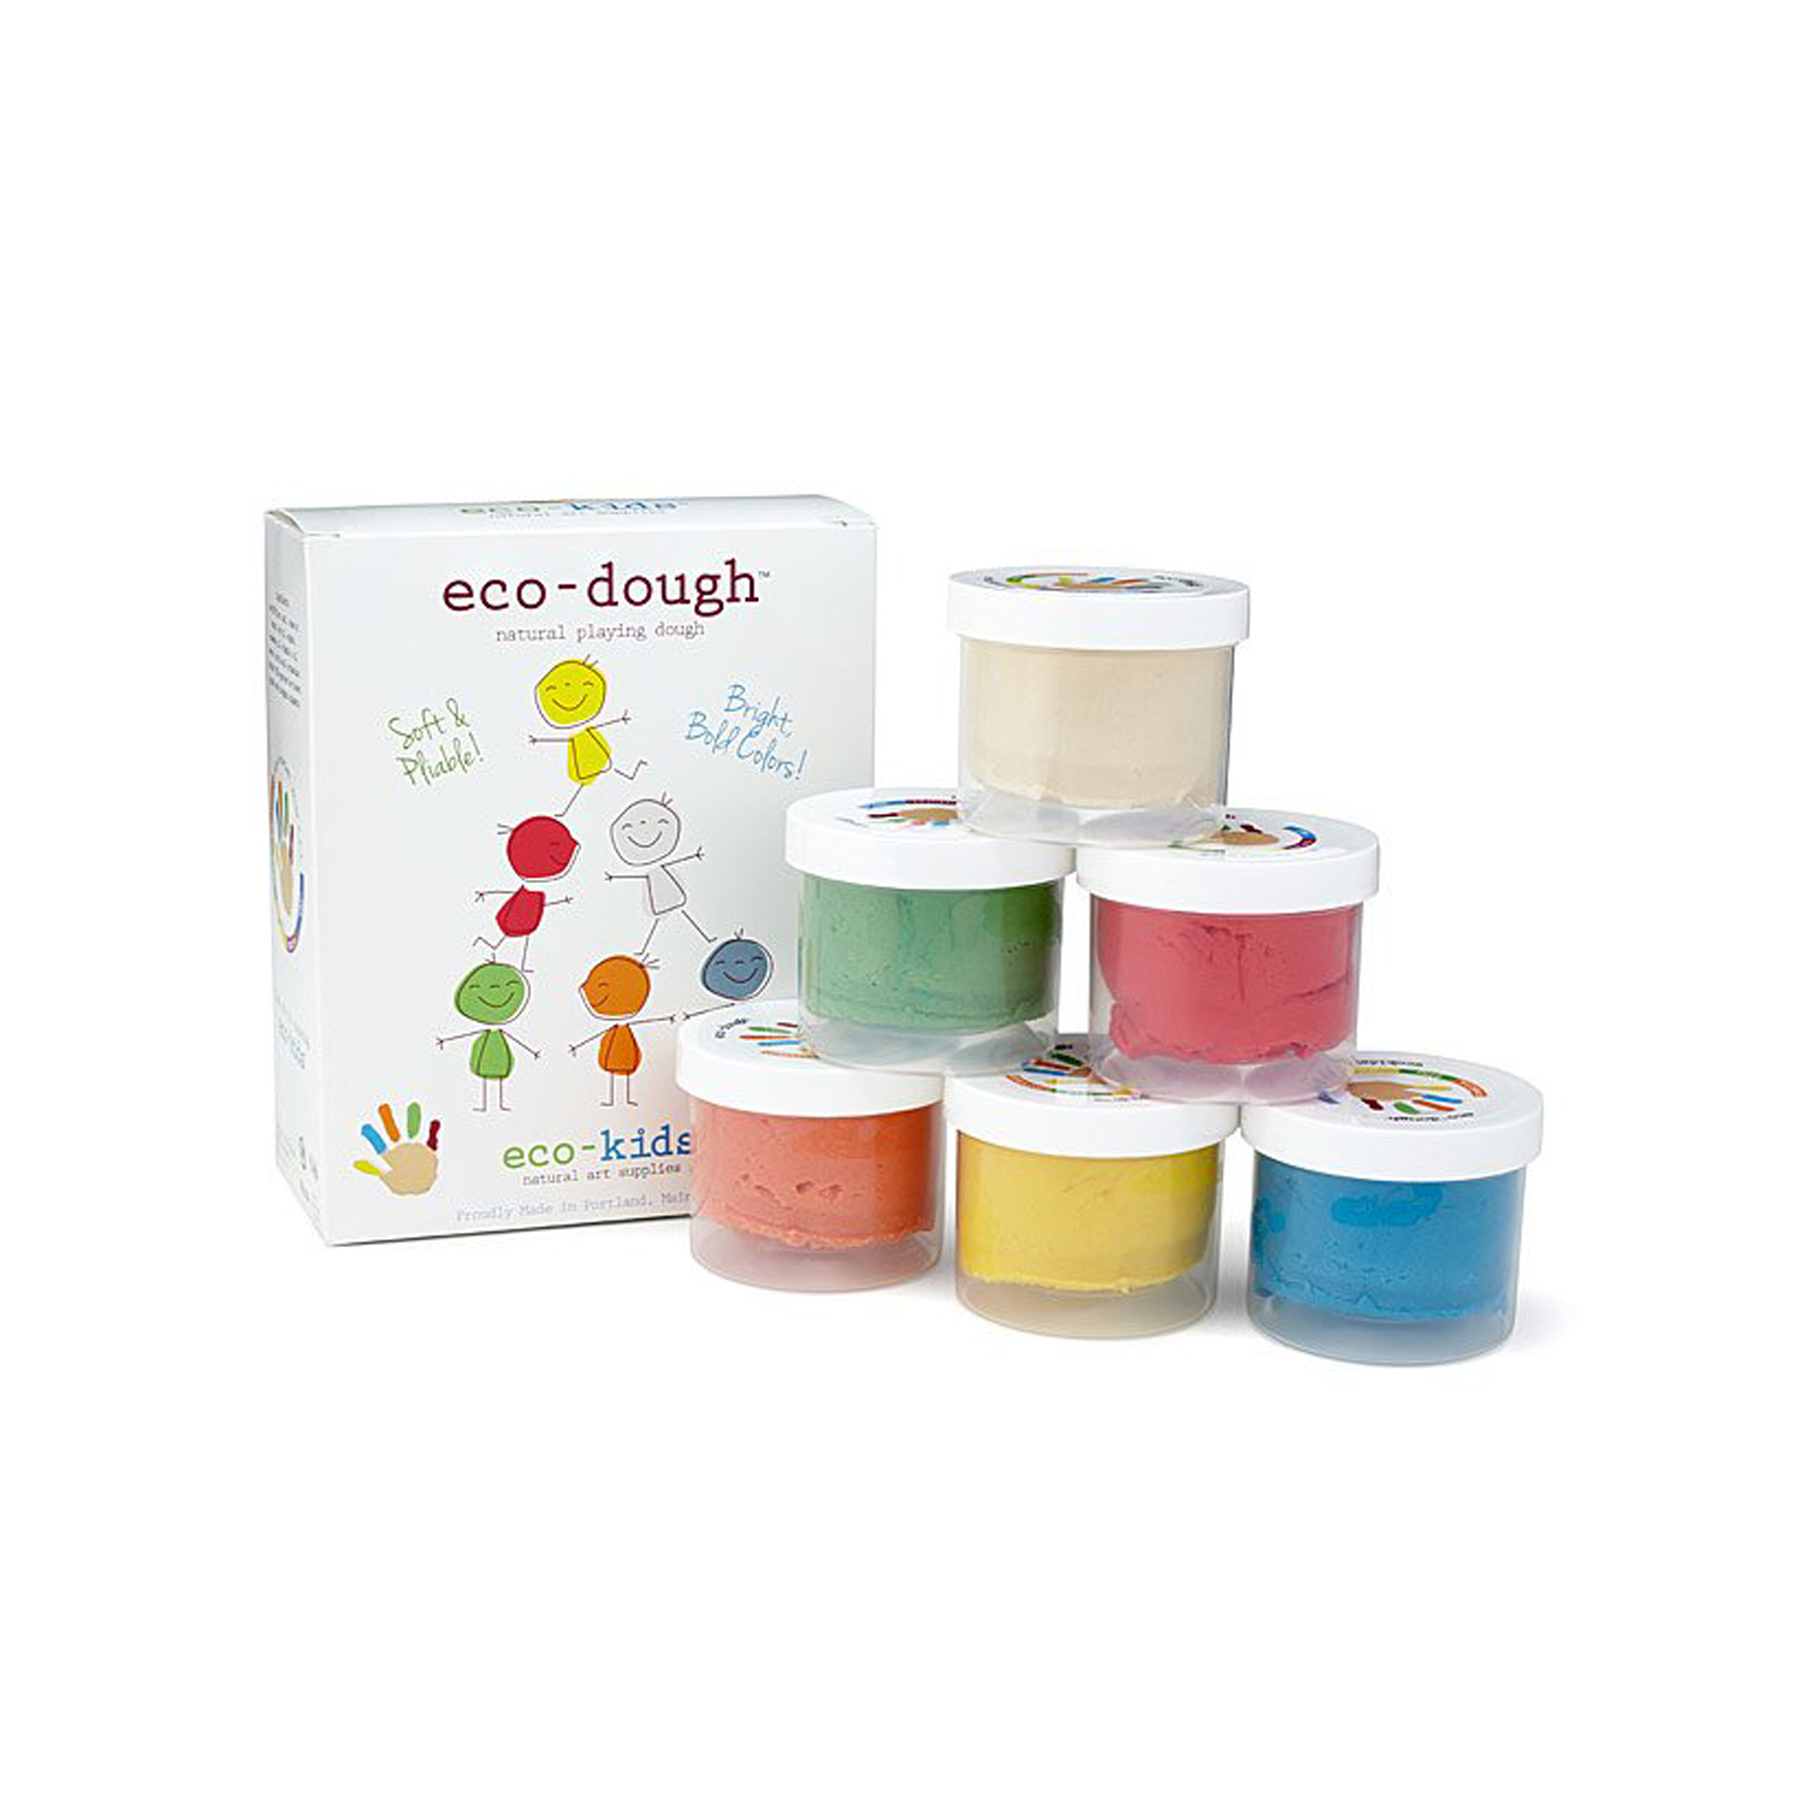 Cheap Christmas Gifts for Kids: Eco-Dough natural playing dough